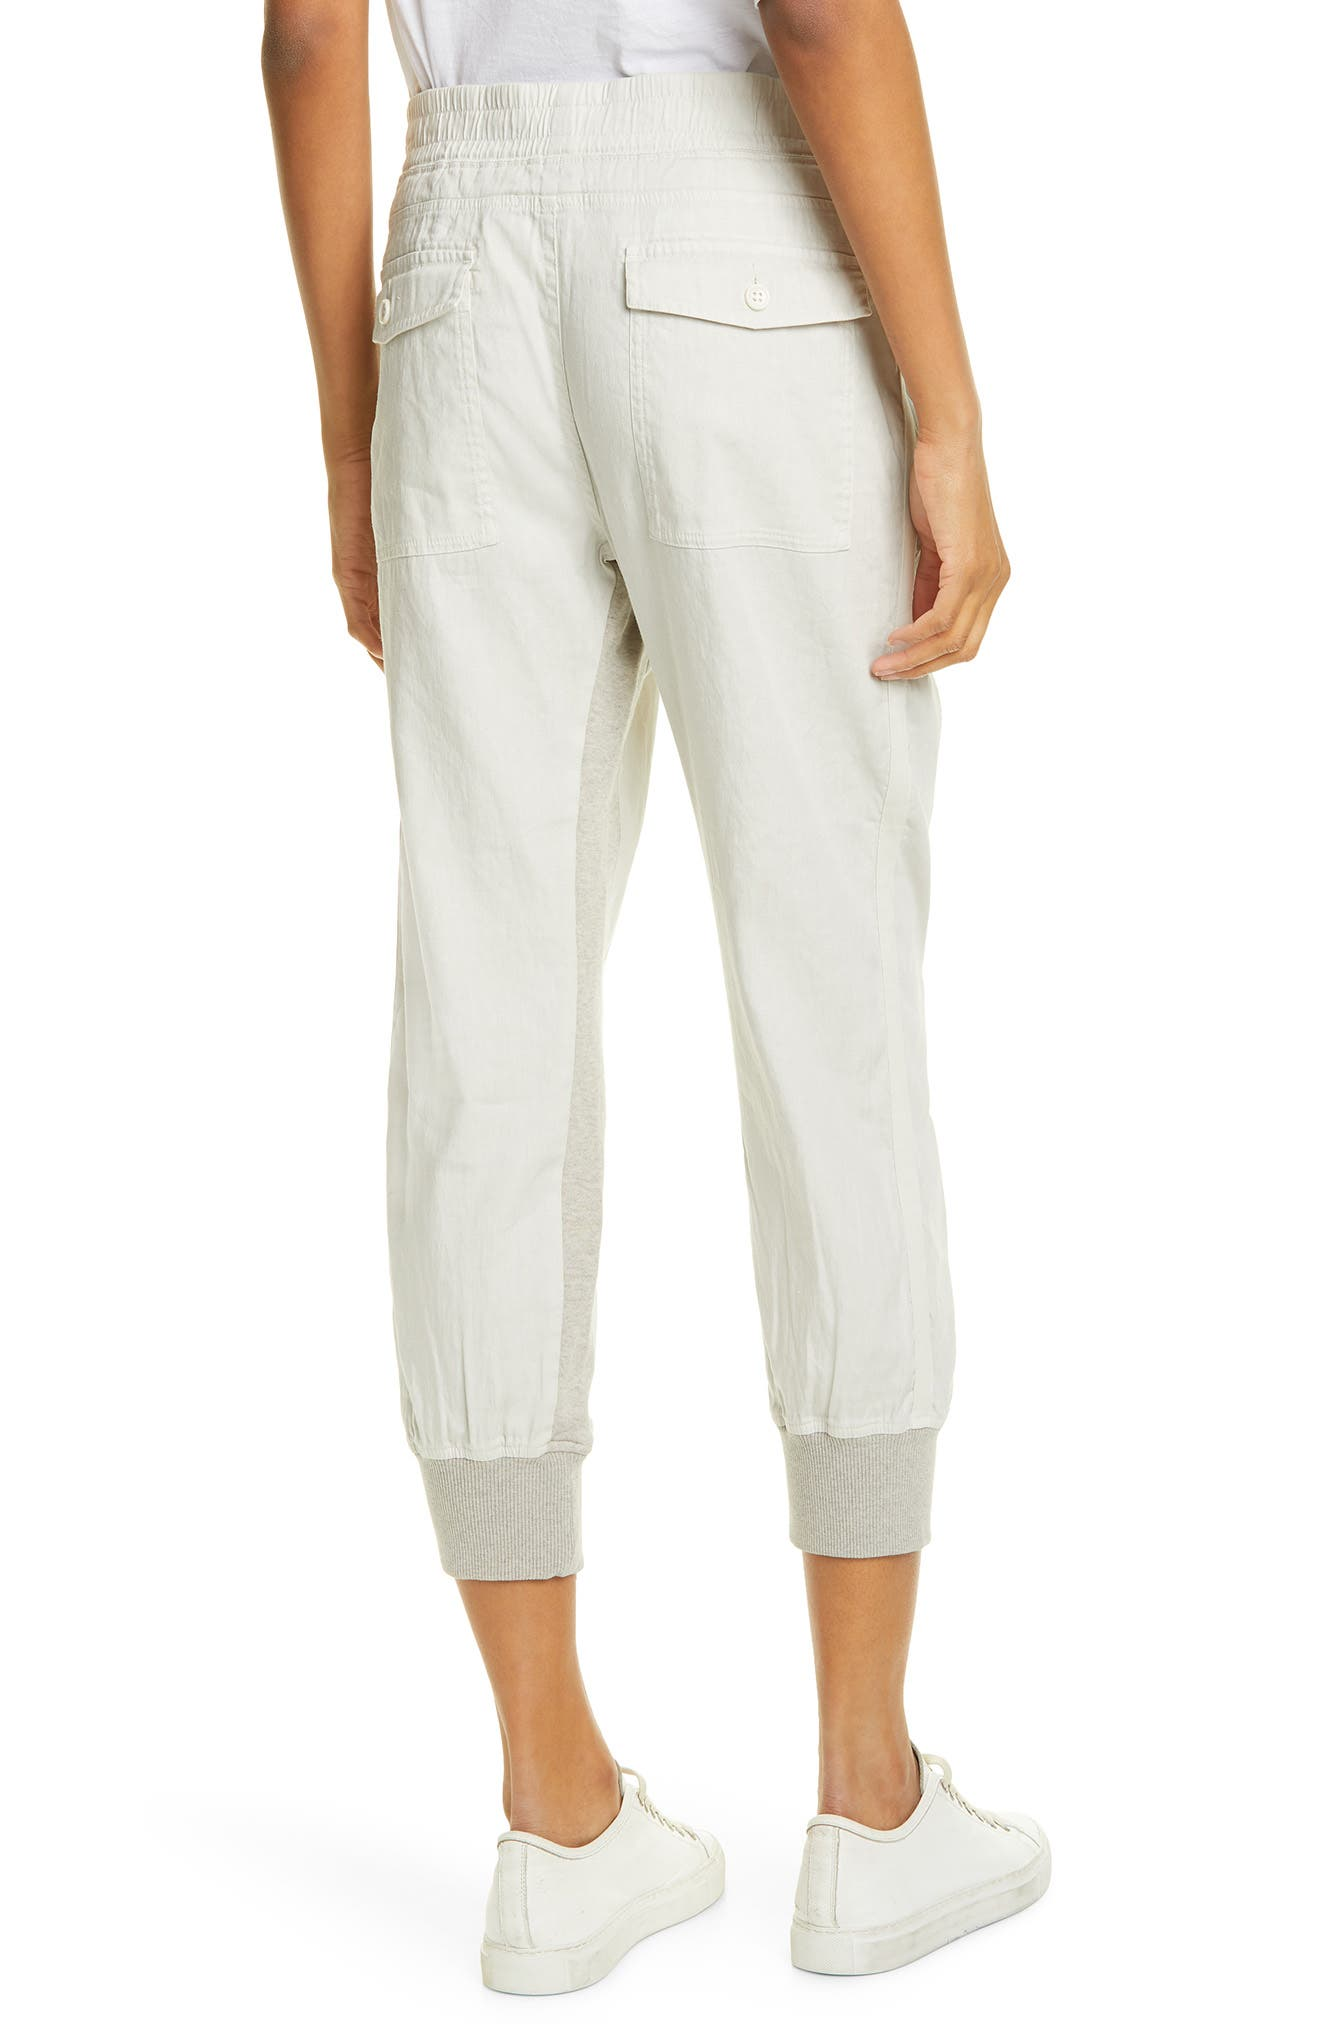 eb330ae6056a06 Women's James Perse Pants & Leggings | Nordstrom